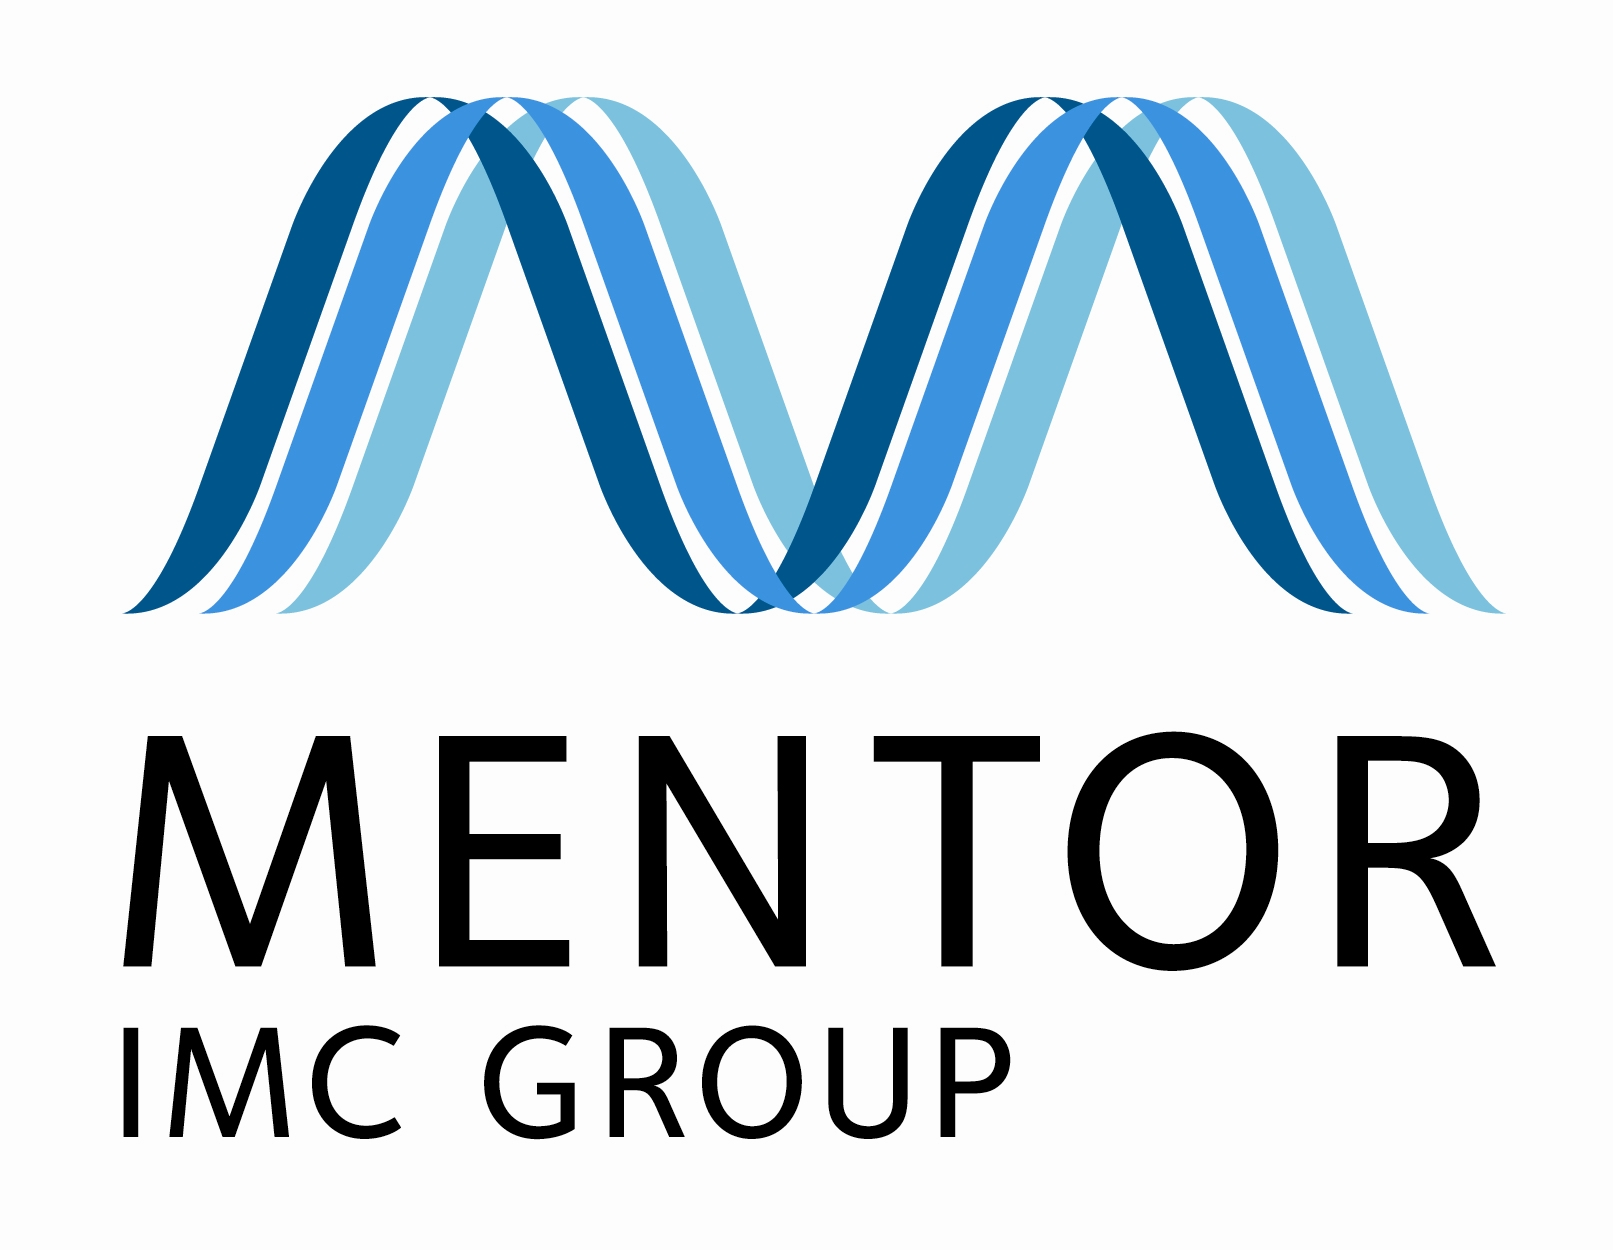 Operations Maintenance Manager at Mentor IMC Group